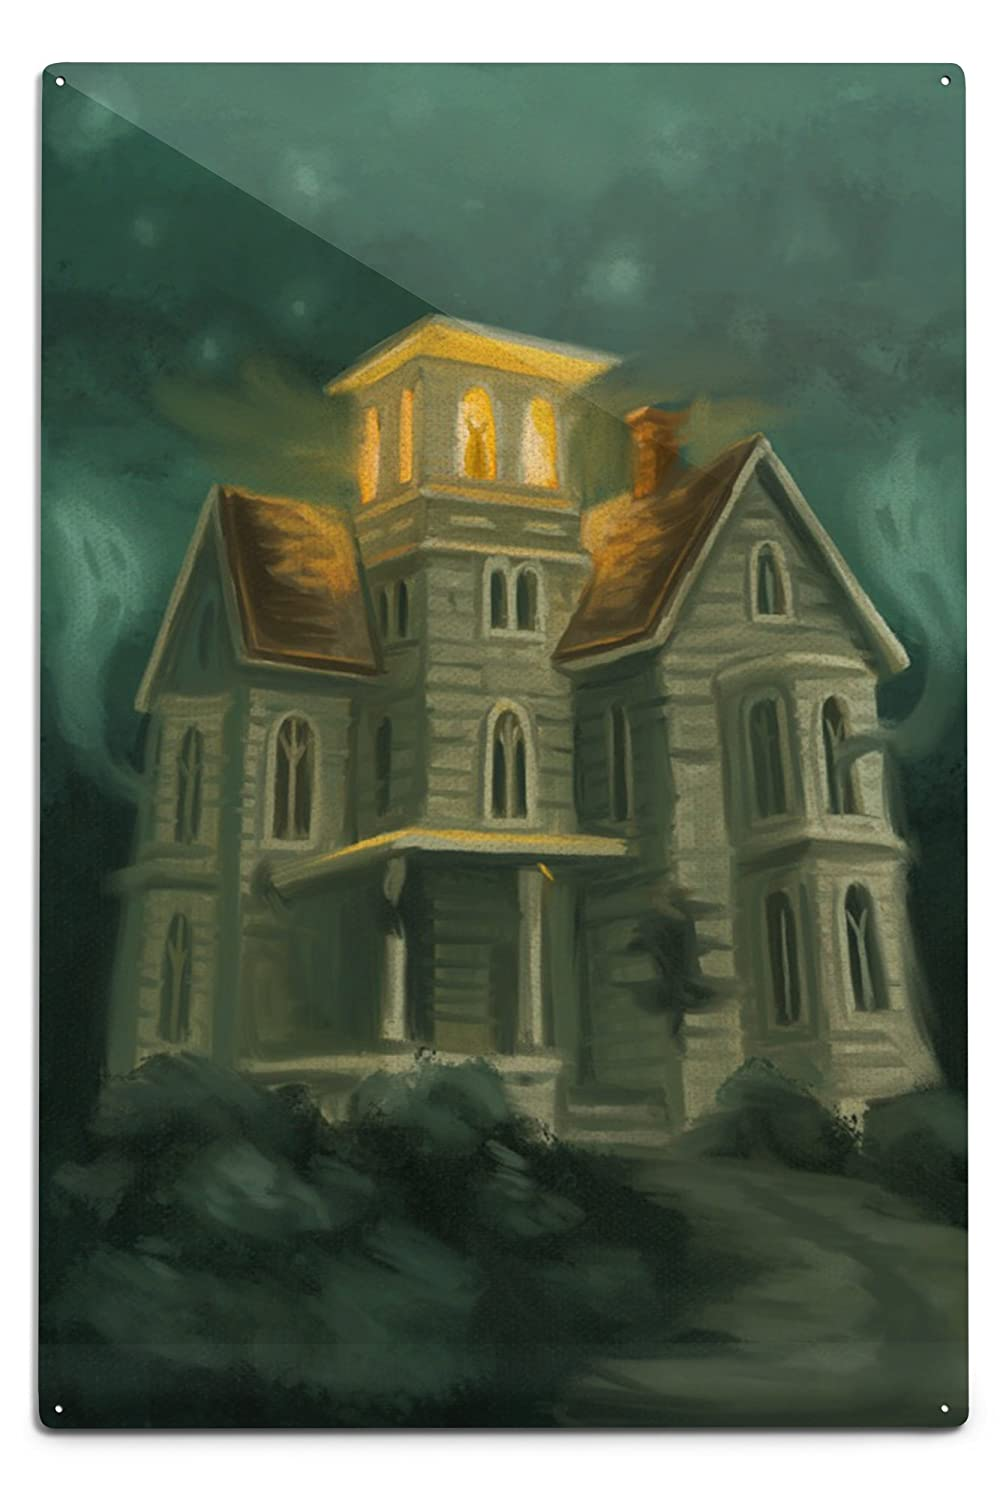 Haunted House – ハロウィン油彩画 12 x 18 Metal Sign LANT-76347-12x18M B06Y1H24PM  12 x 18 Metal Sign